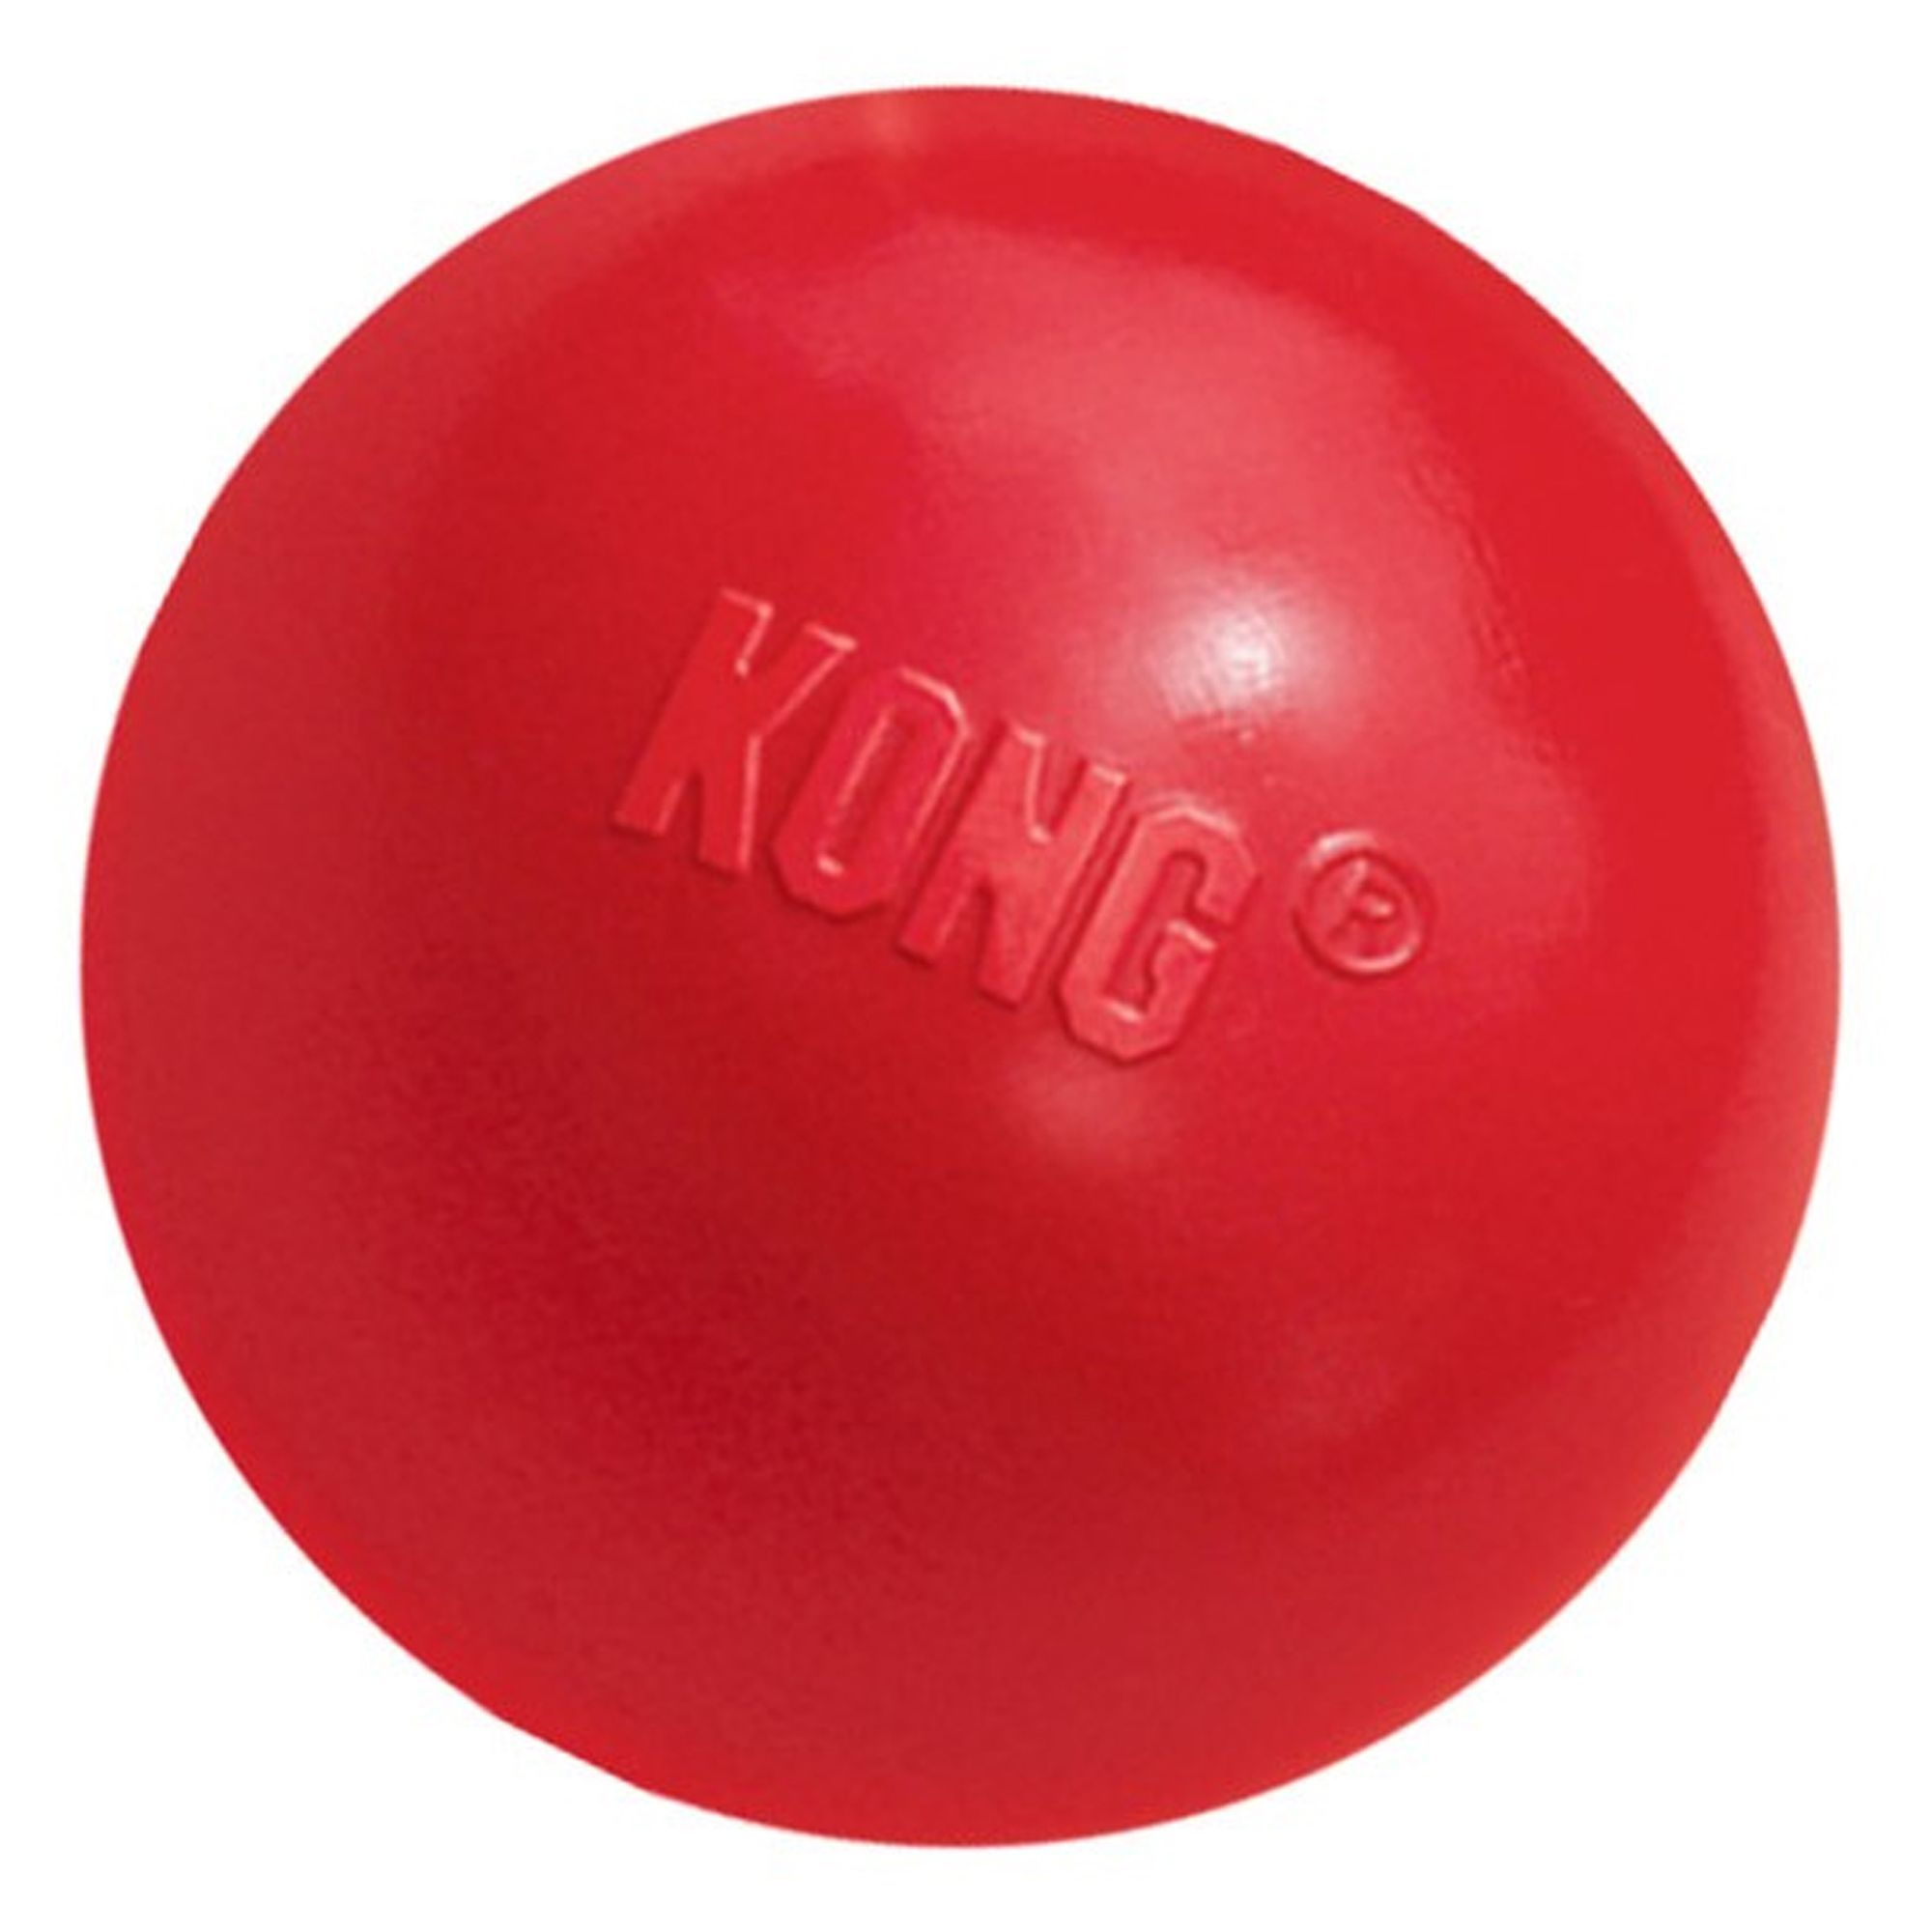 Kong Ball Dog Toy Size Small Red Dog Toys Kong Classic Pet